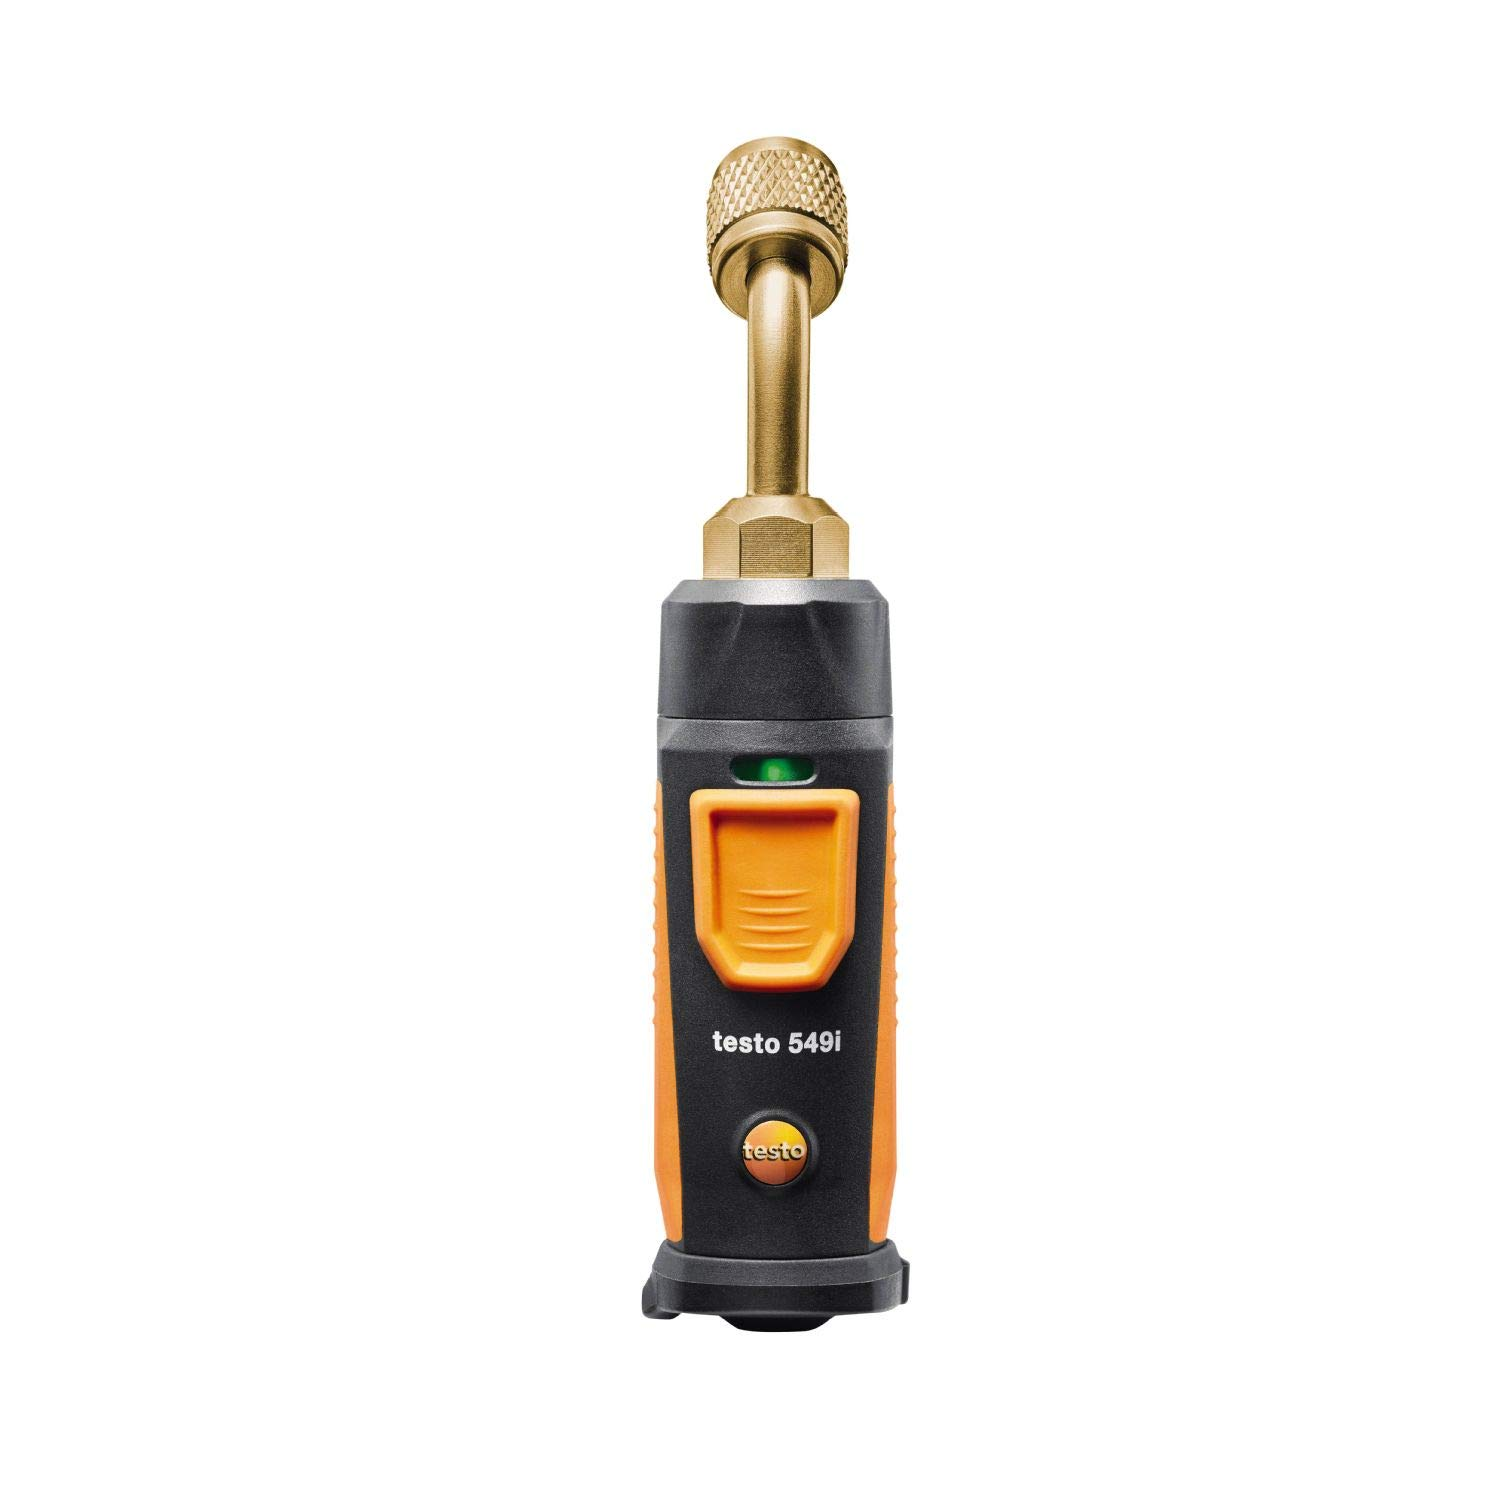 Testo 0560 2549 Sales of SALE items from new works 03 549i High-Pressure De Generation Gauge Popular brand in the world 45 2nd